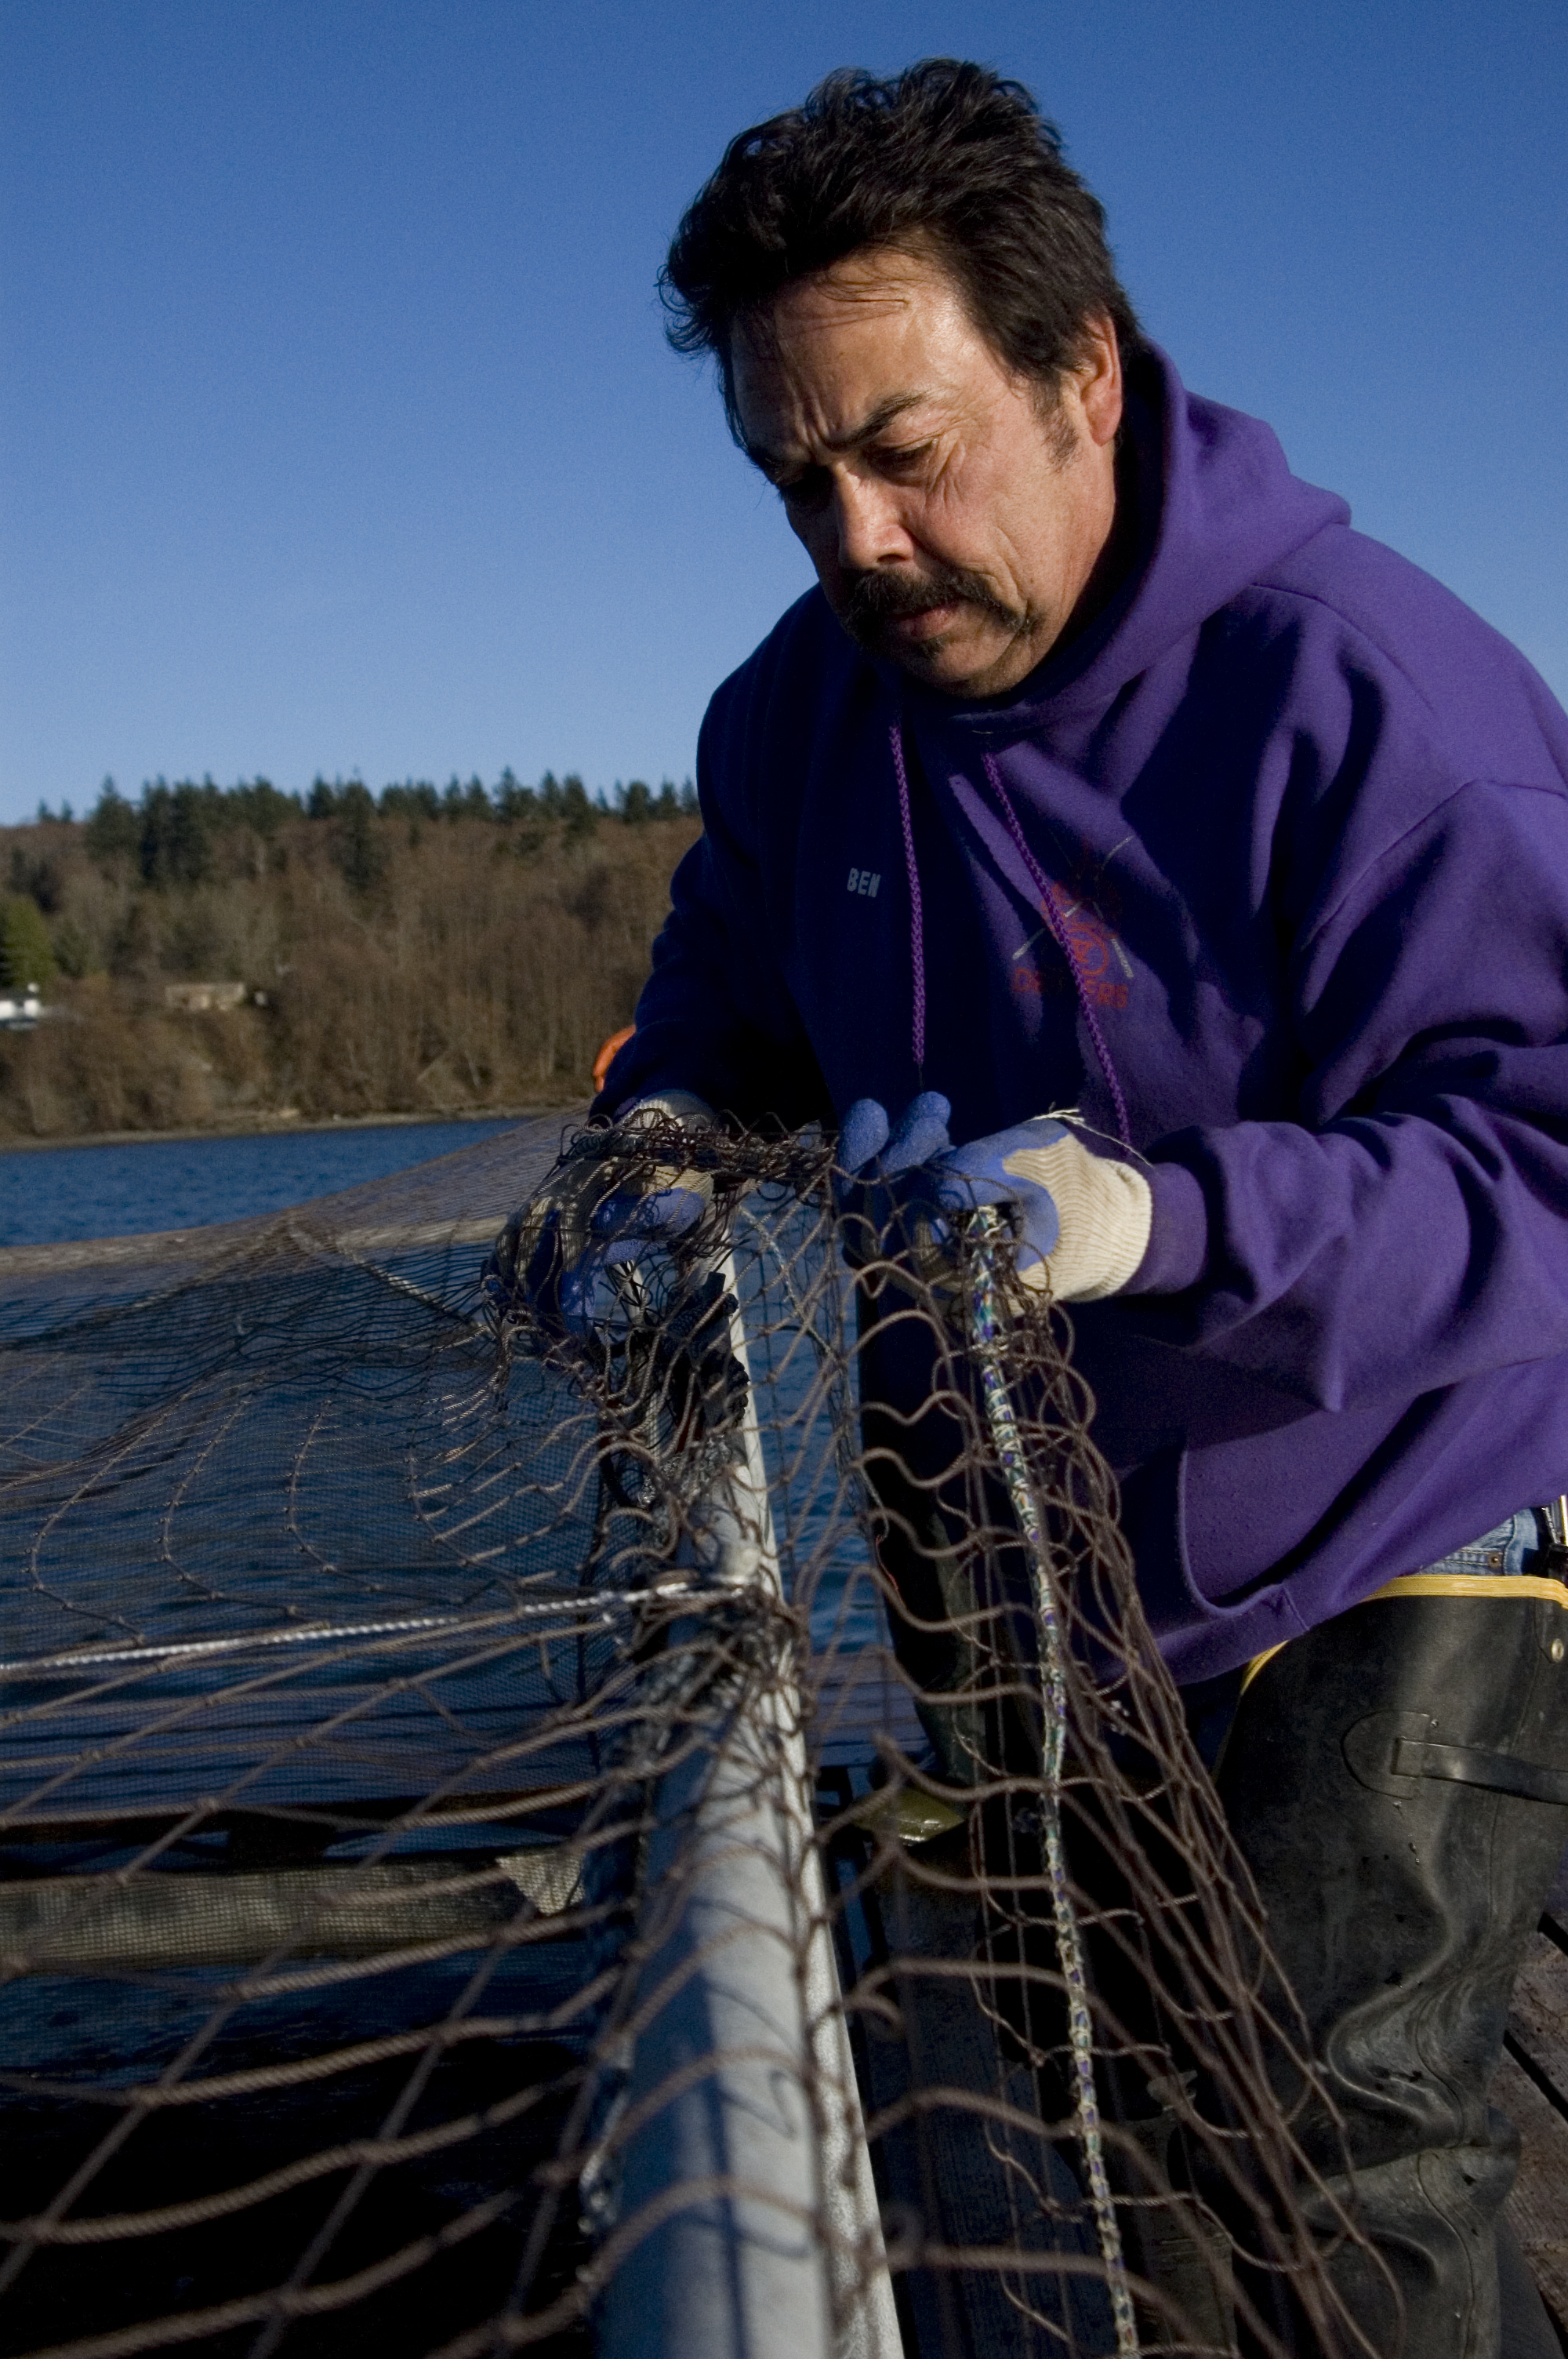 Port Gamble S'Klallam: Net Pens Still Going Strong After Three Decades